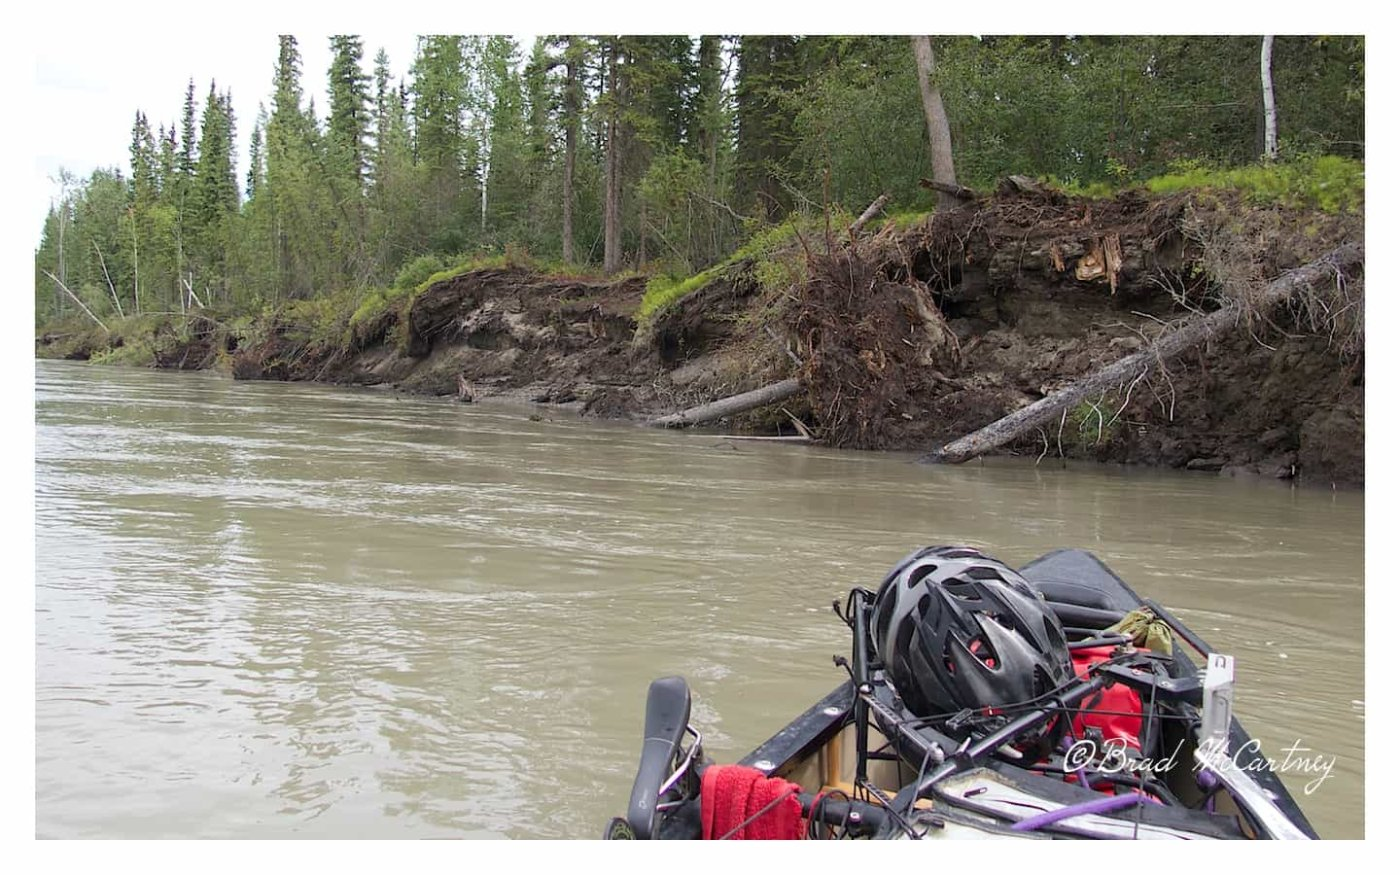 Erosion of the riverbanks is ongoing. Buildings, gravesites and whole Islands have eroded into the river to make new Islands further downstream as the river changes over time